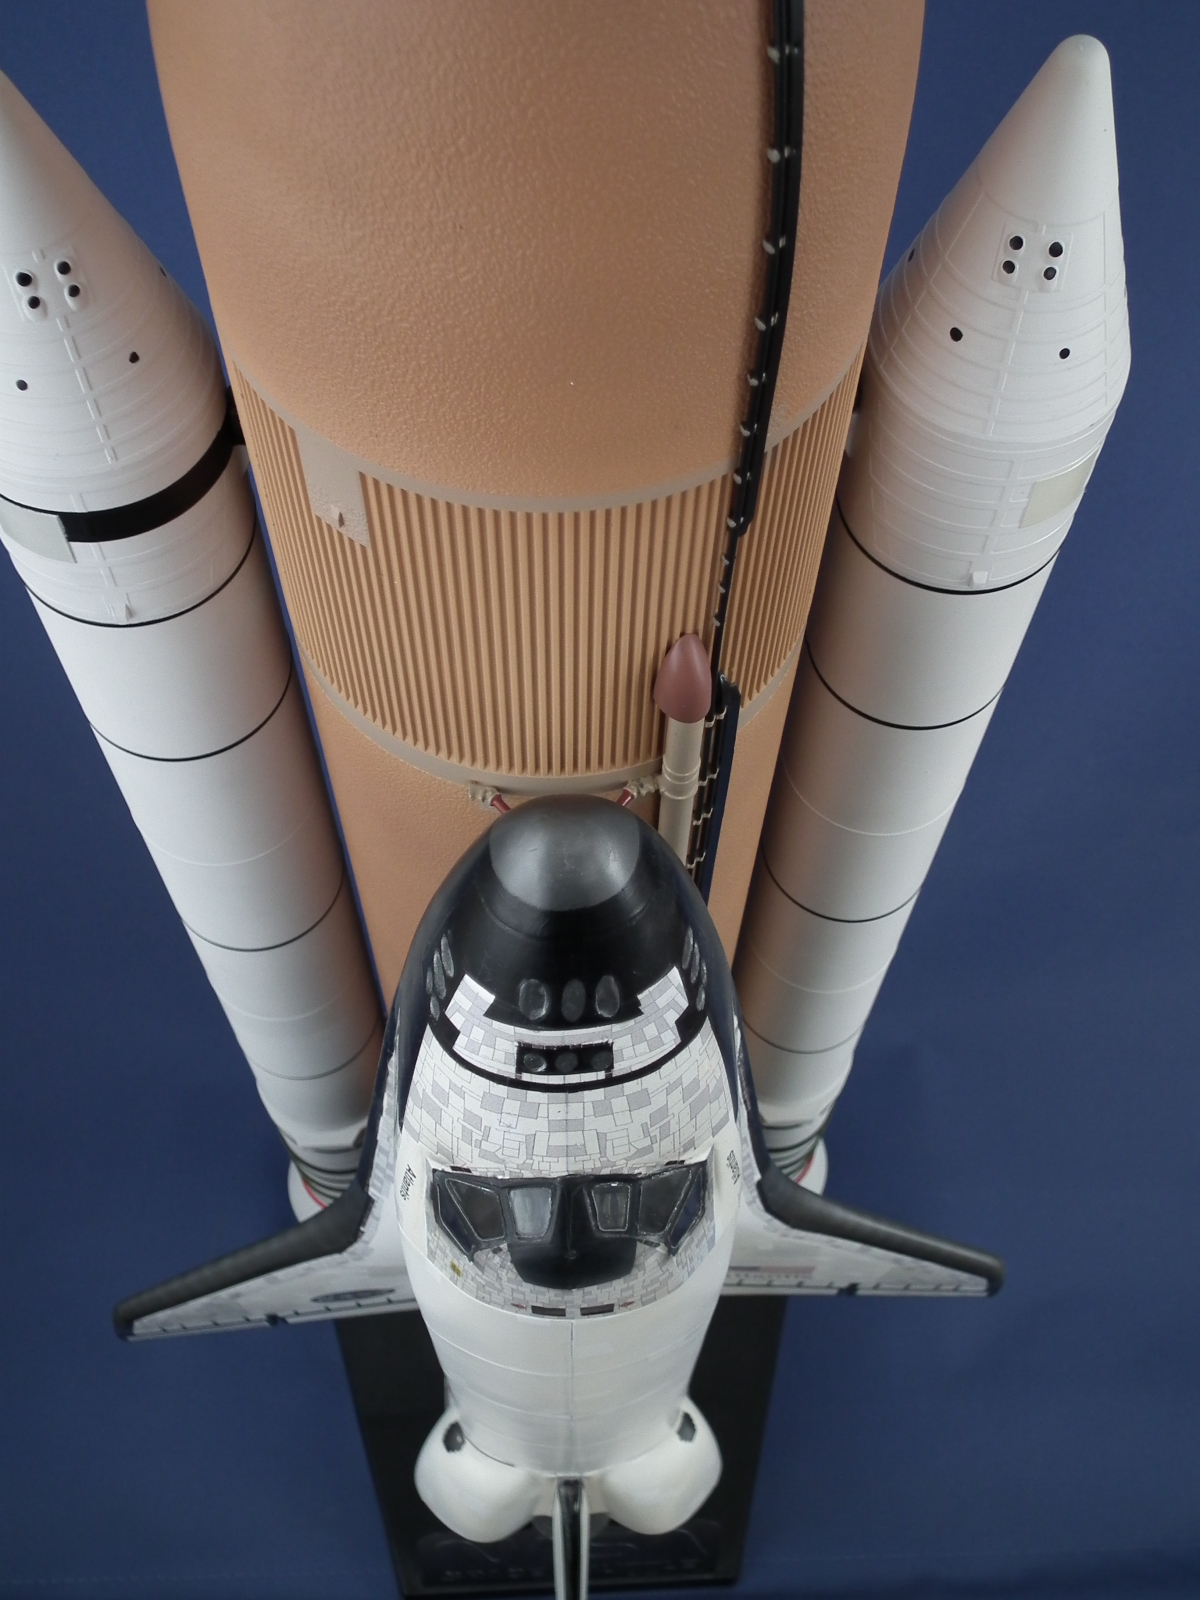 STS-135 Space Shuttle Scale: 1/72   Manufacture: Revell   Parts used: After market decals and stand   Main paints used: Tamiya and Vallejo